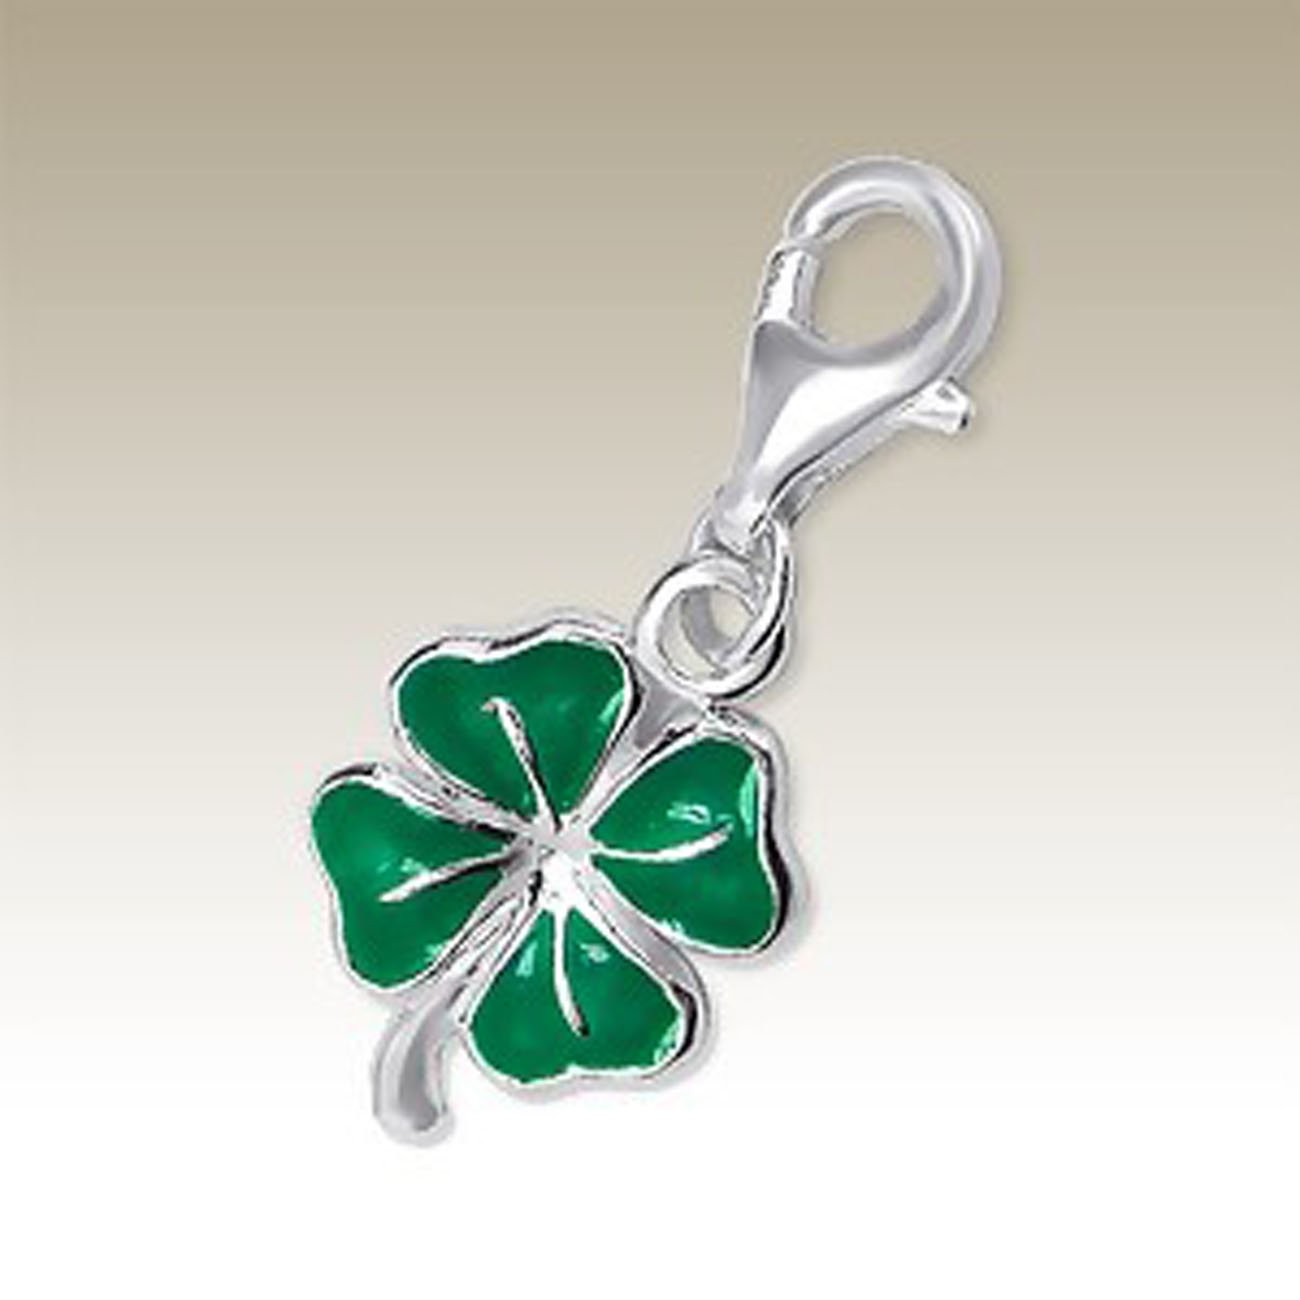 Four Leaf Clover Charm with Lobster Clasp, Sterling Silver 925, for Charms Bracelet, Necklace (E5993)